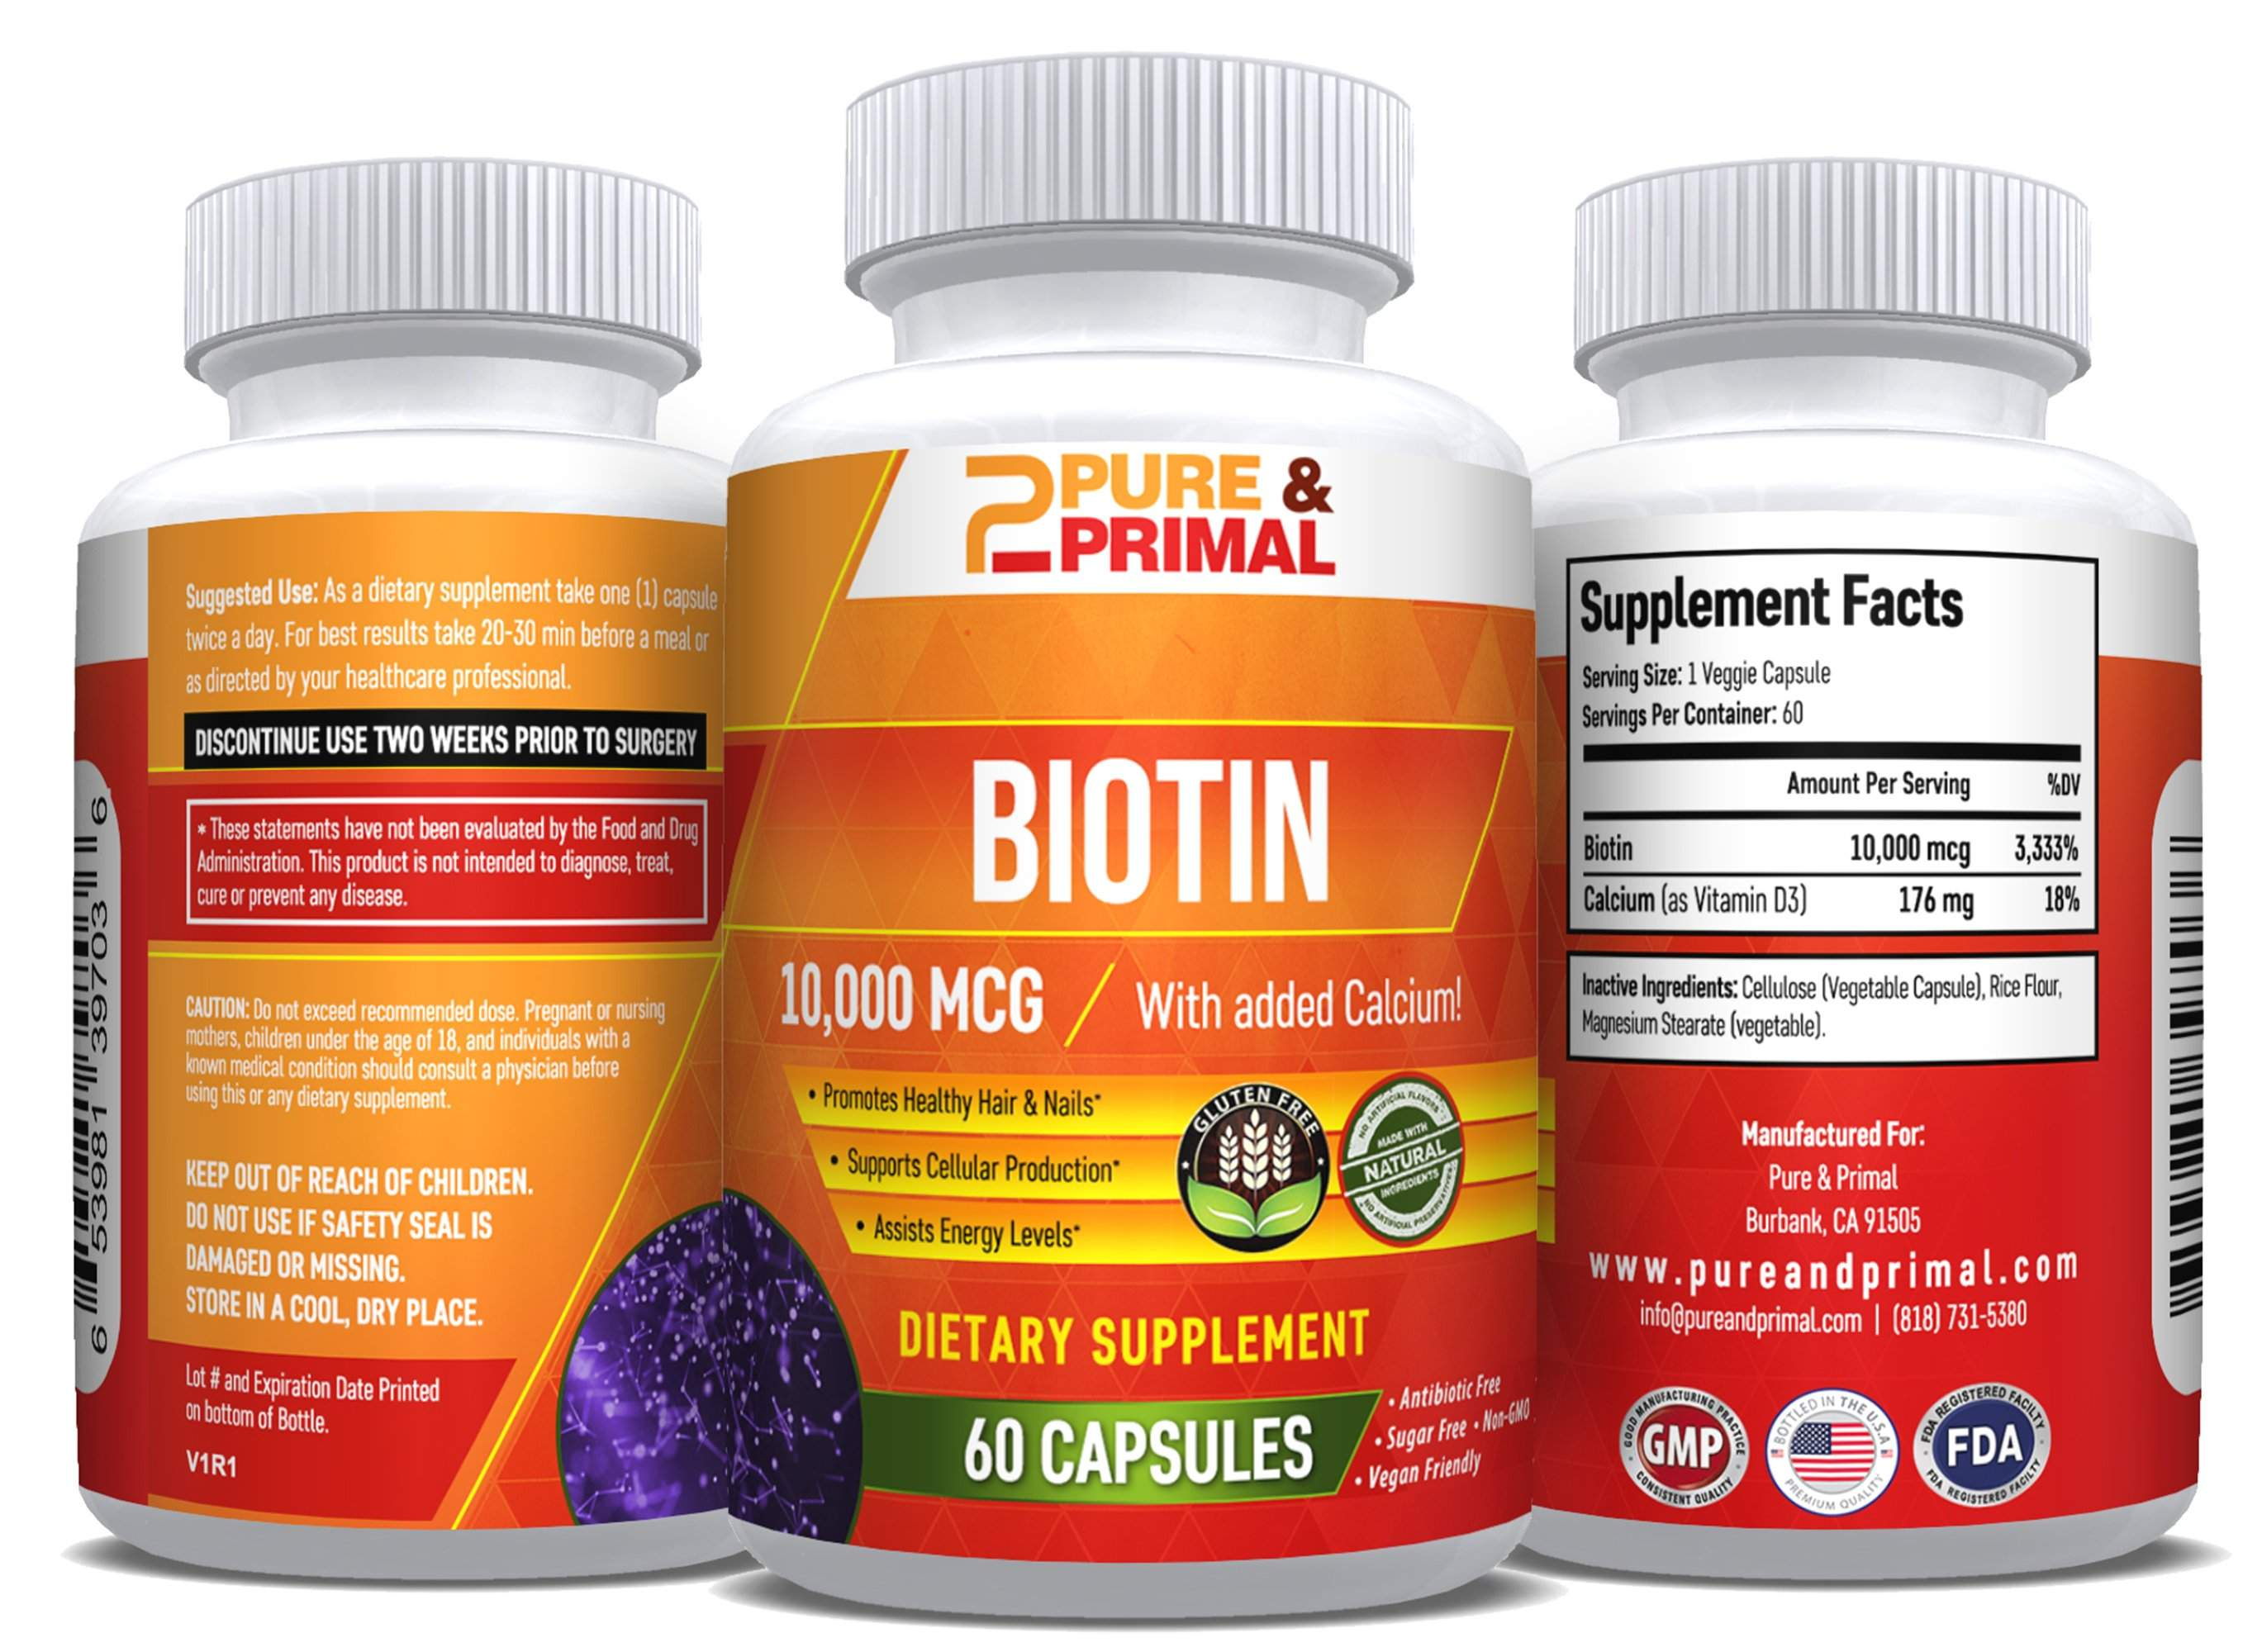 Biotin - Beneficial to Hair, Nails, and Skin